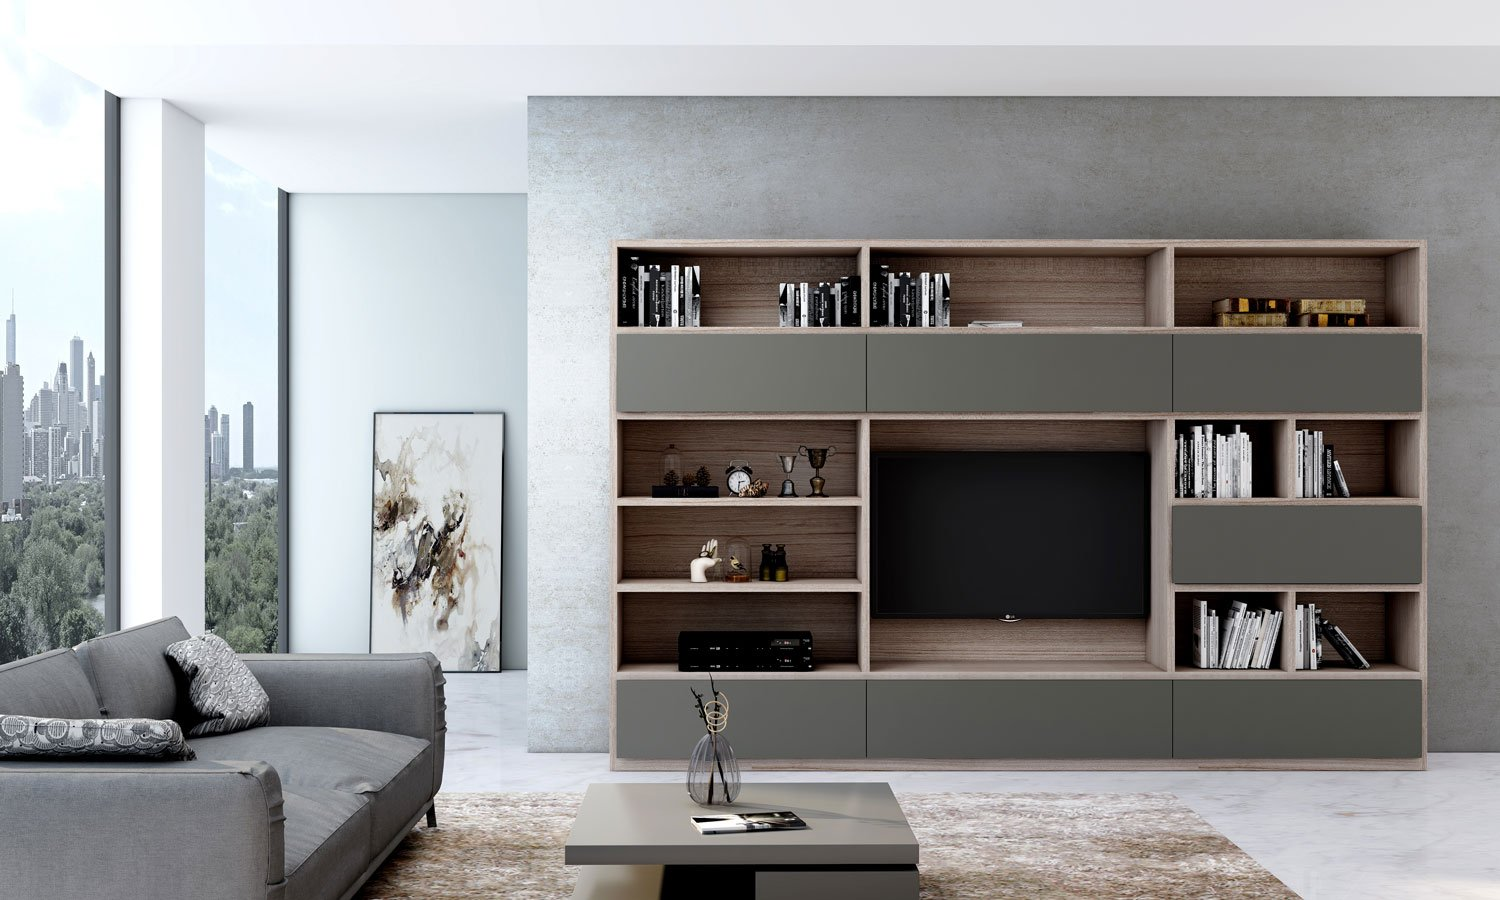 TV unit with Storage in Flap ups, Drawers and Open shelf units in Combination of White Halifax Oak and Onyx Grey